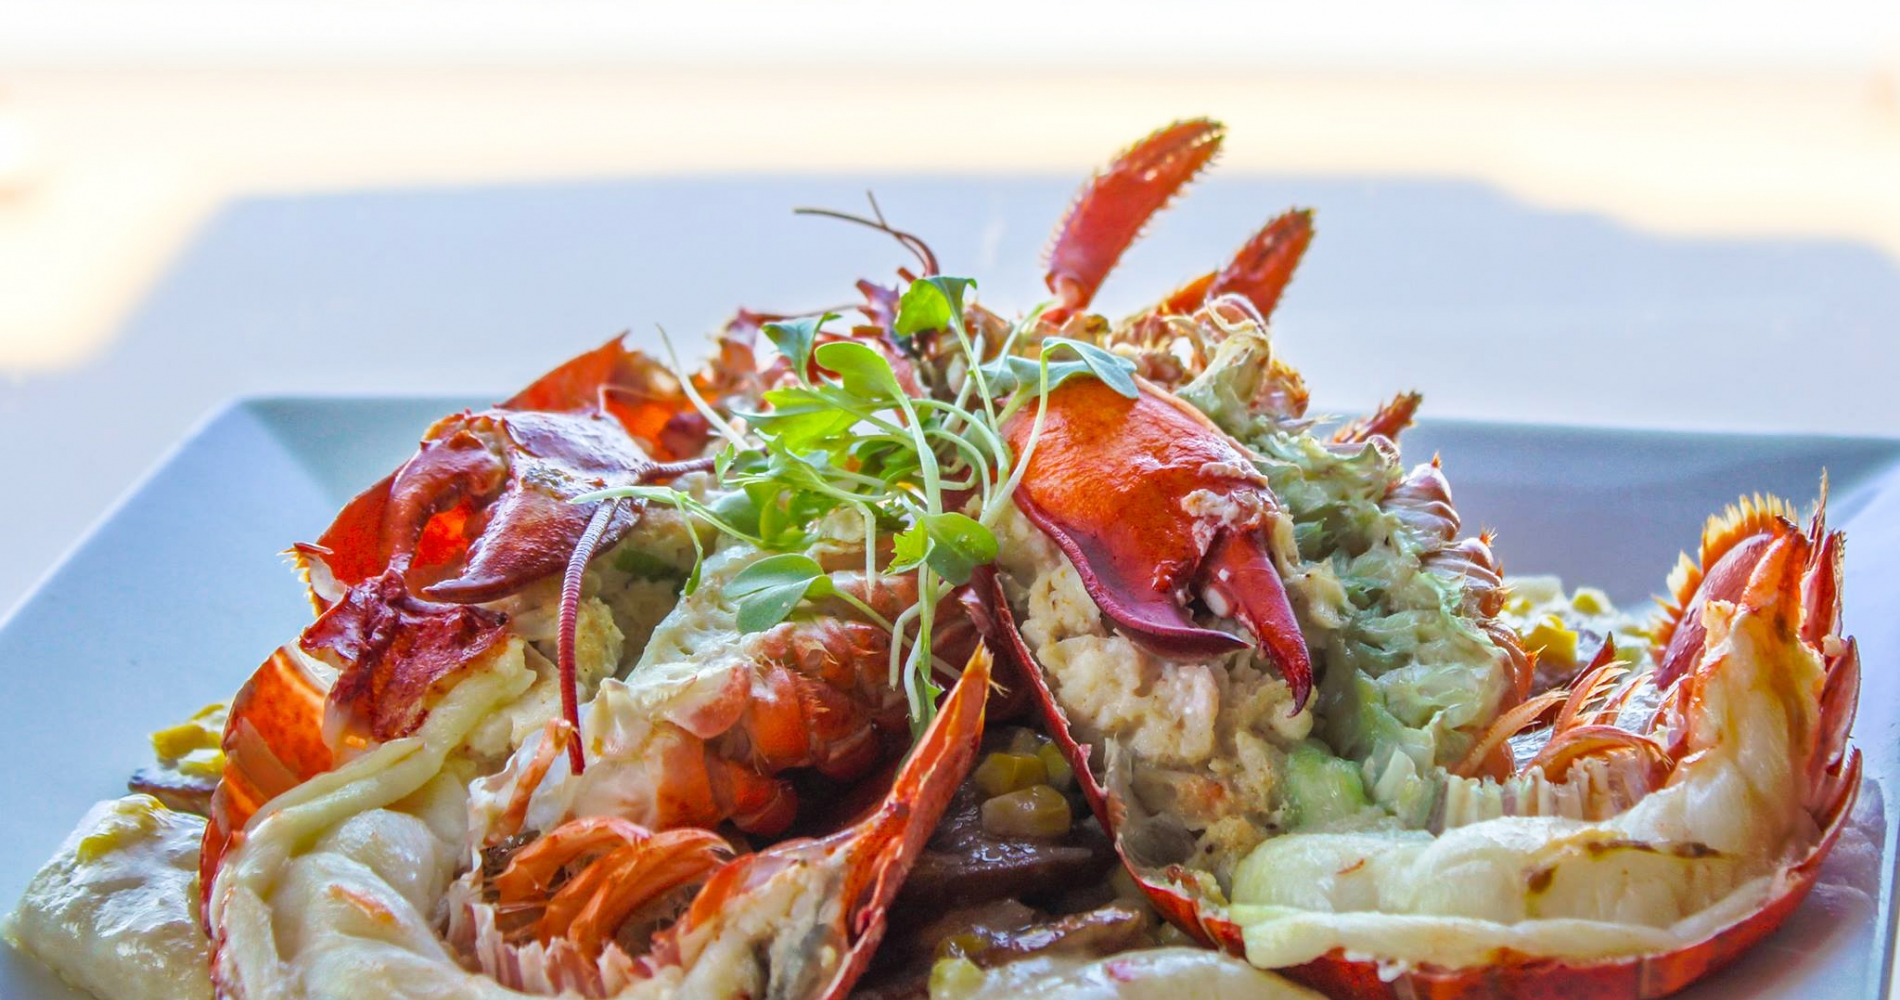 split lobster tails and claws on a plate